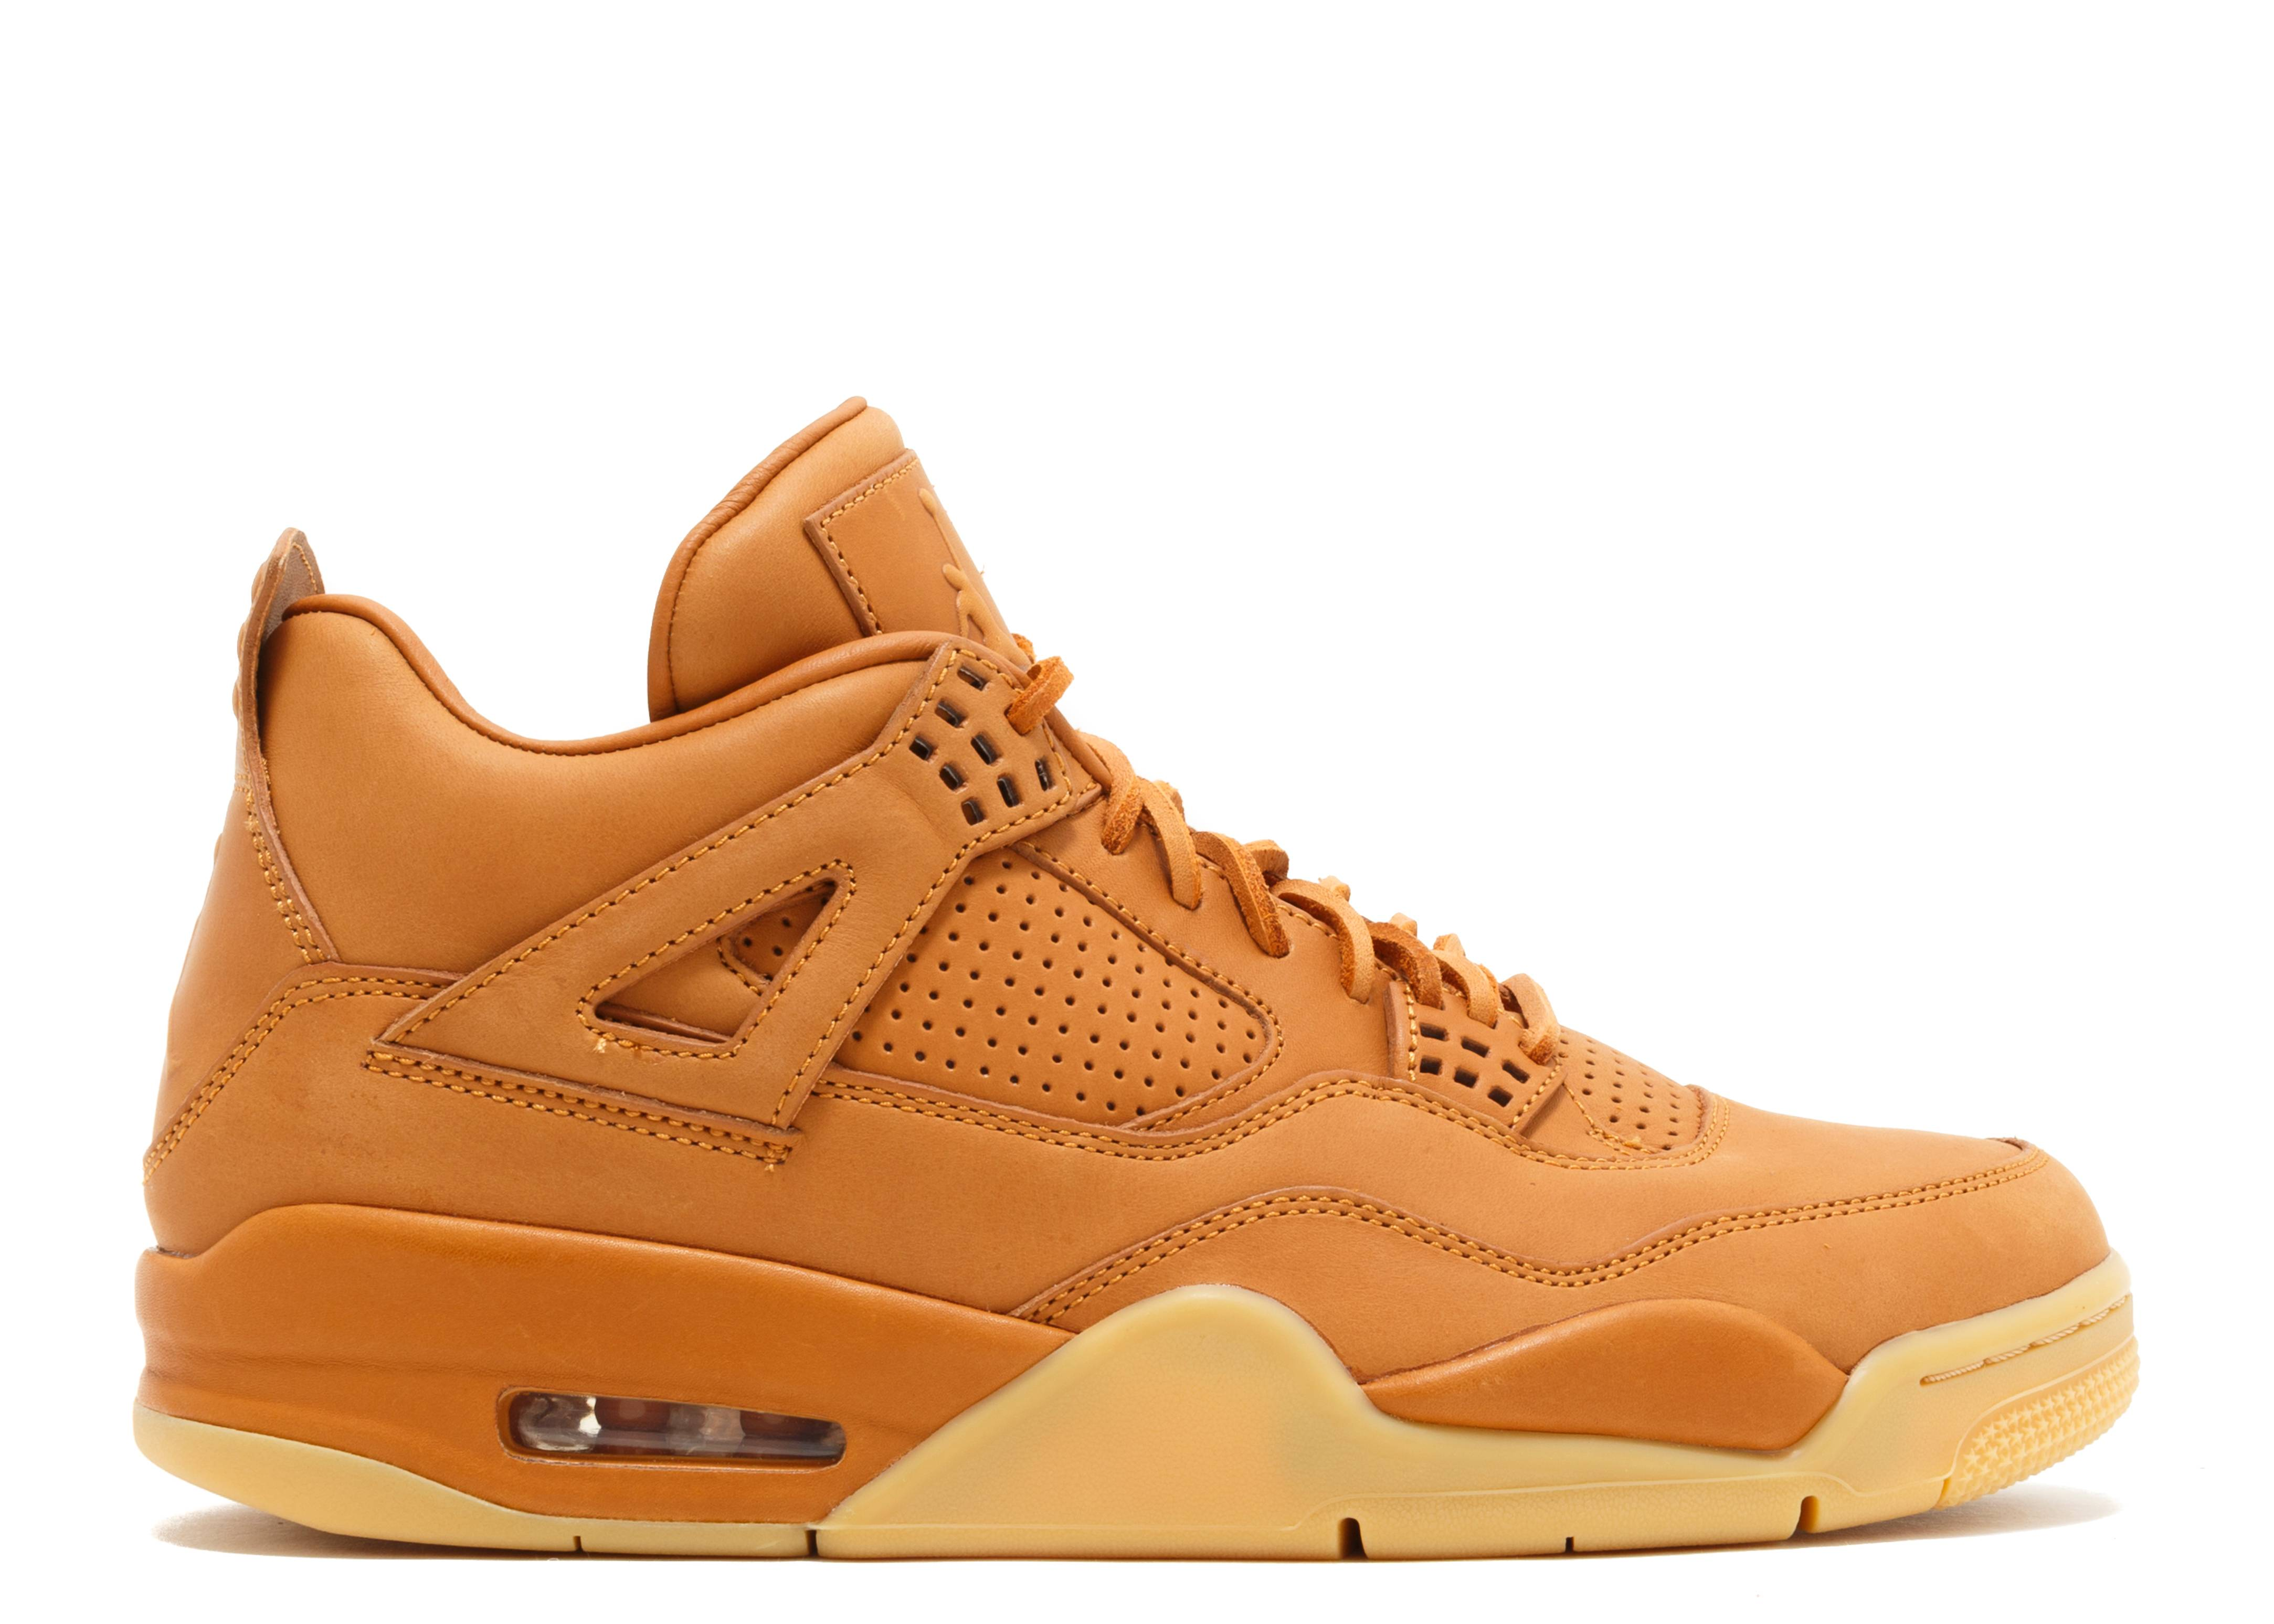 tan jordan shoes